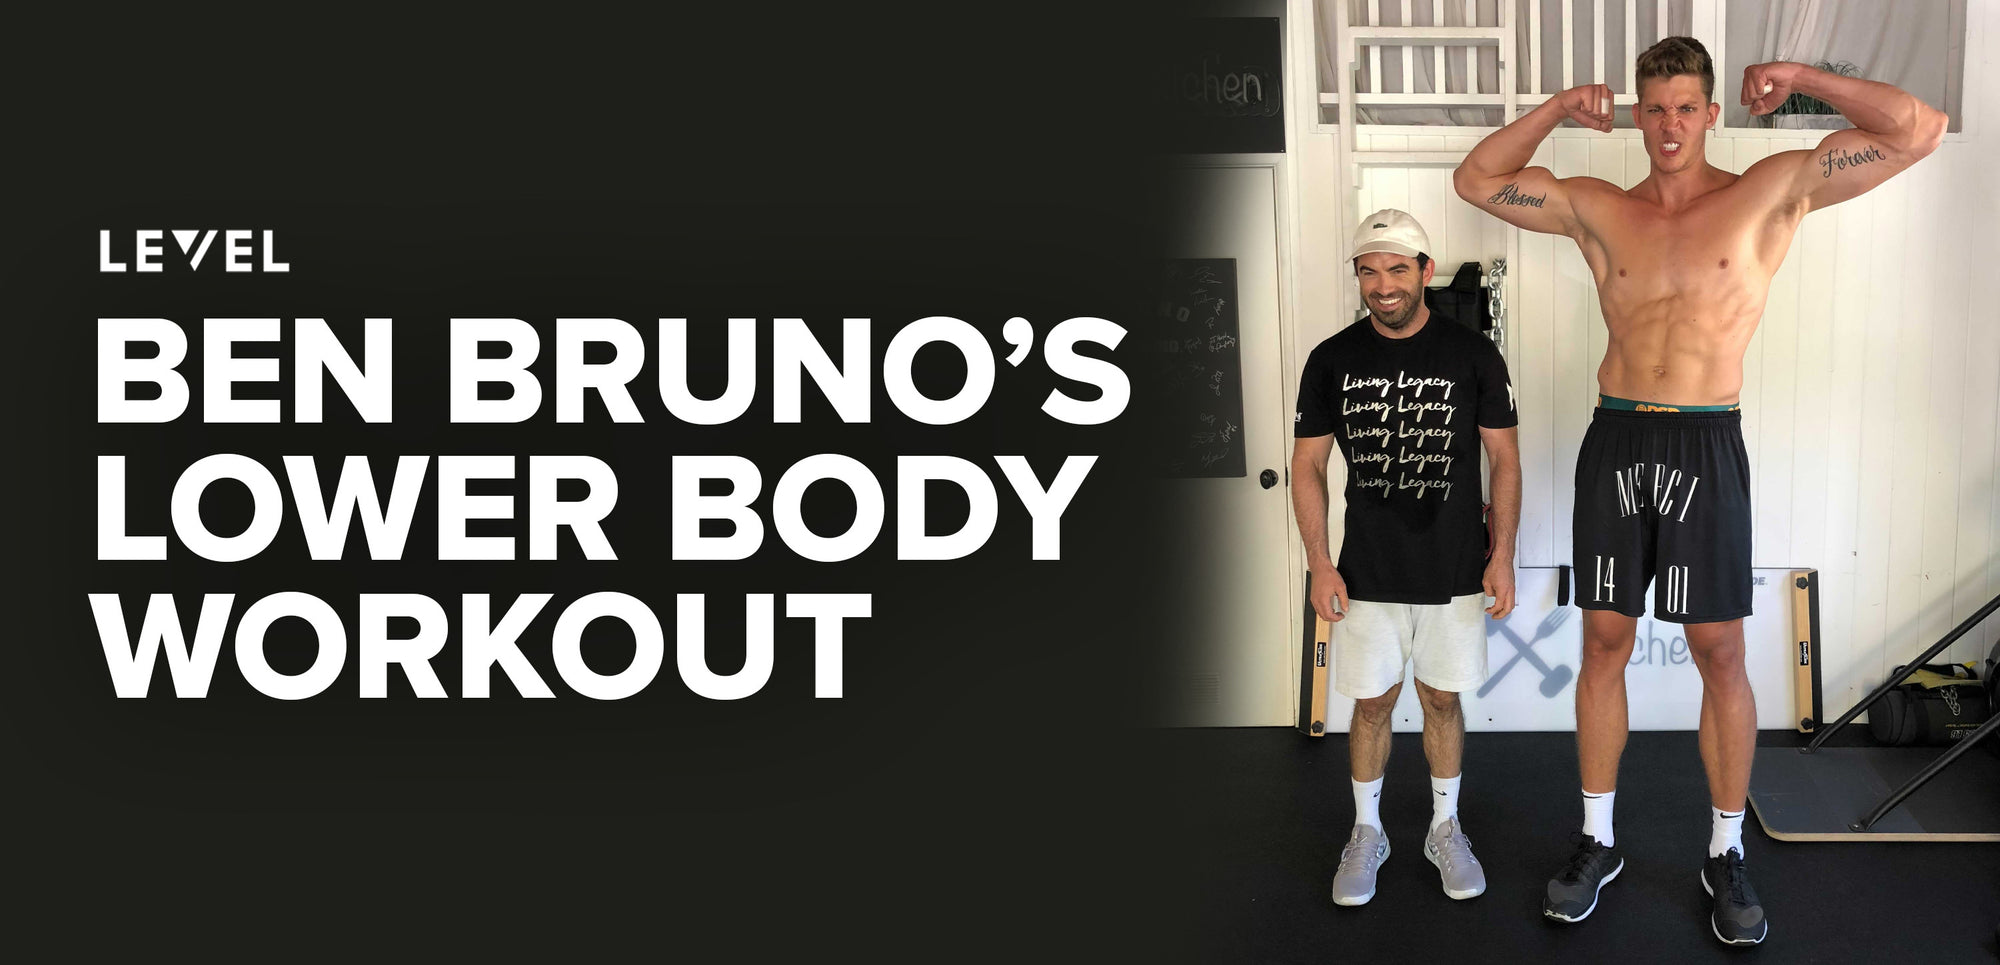 BEN BRUNO'S LOWER BODY WORKOUT